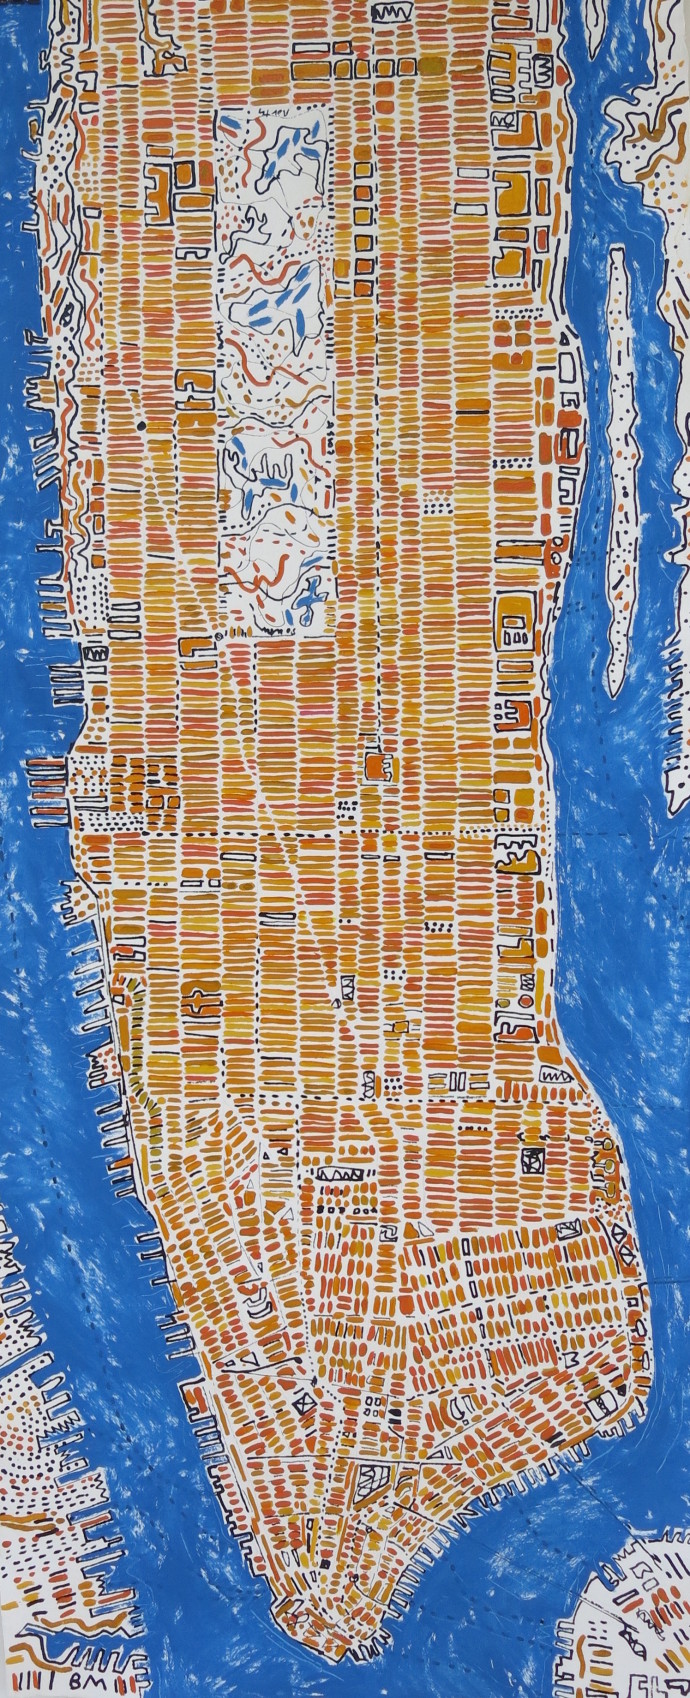 <div class=&#34;artist&#34;><strong>Barbara Macfarlane</strong></div><div class=&#34;title&#34;><em>Long Manhattan Yellow Ochre</em>, 2017</div><div class=&#34;medium&#34;>oil and ink on handmade Khadi paper</div><div class=&#34;dimensions&#34;>200 x 80 cm<br>78 3/4 x 31 1/2 in</div>